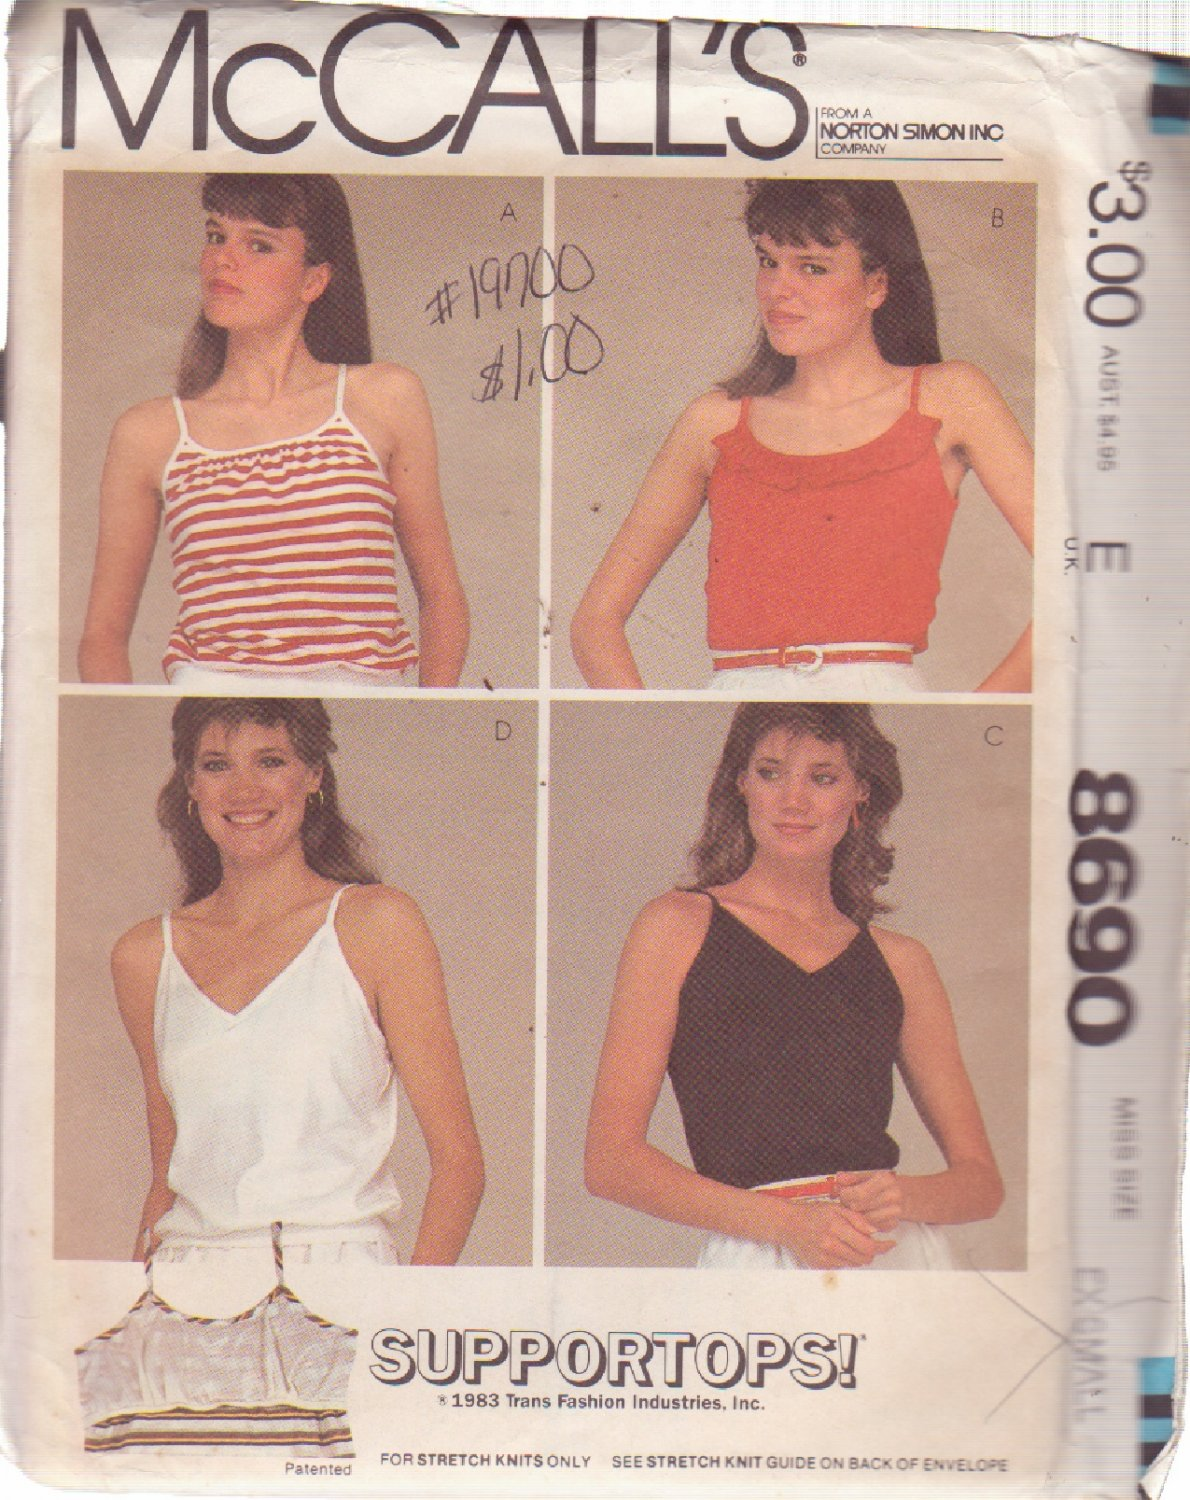 McCALL'S PATTERN 8690 MISSES' SUPPORT TOPS IN 4 VARIATIONS SIZE XSMALL 6/8